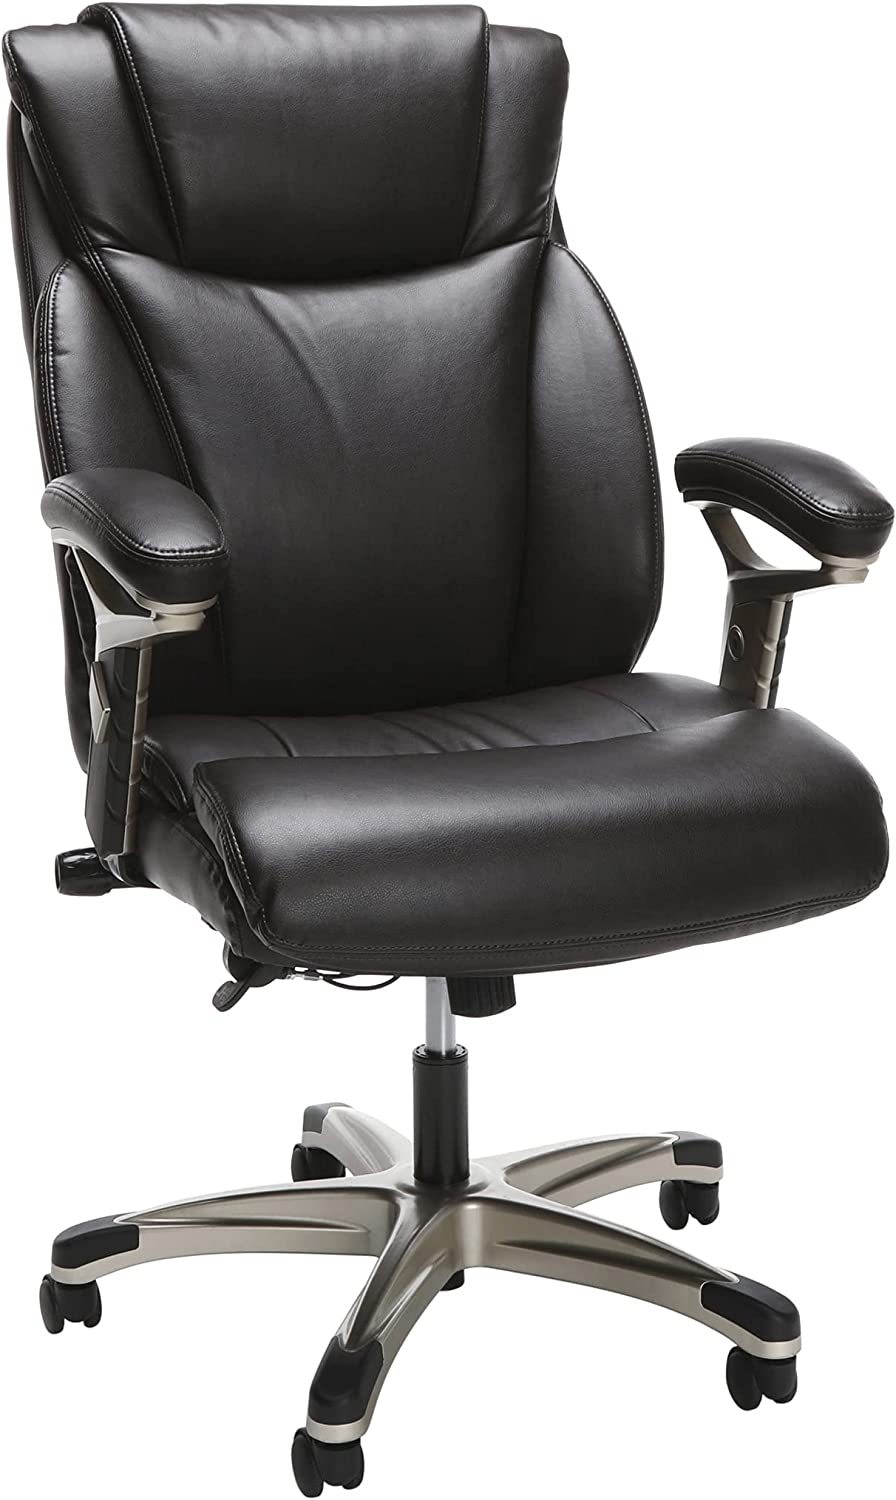 OFM Rapid rise Max 51% OFF ESS Collection Ergonomic Bonded Office Leather Chair Execut